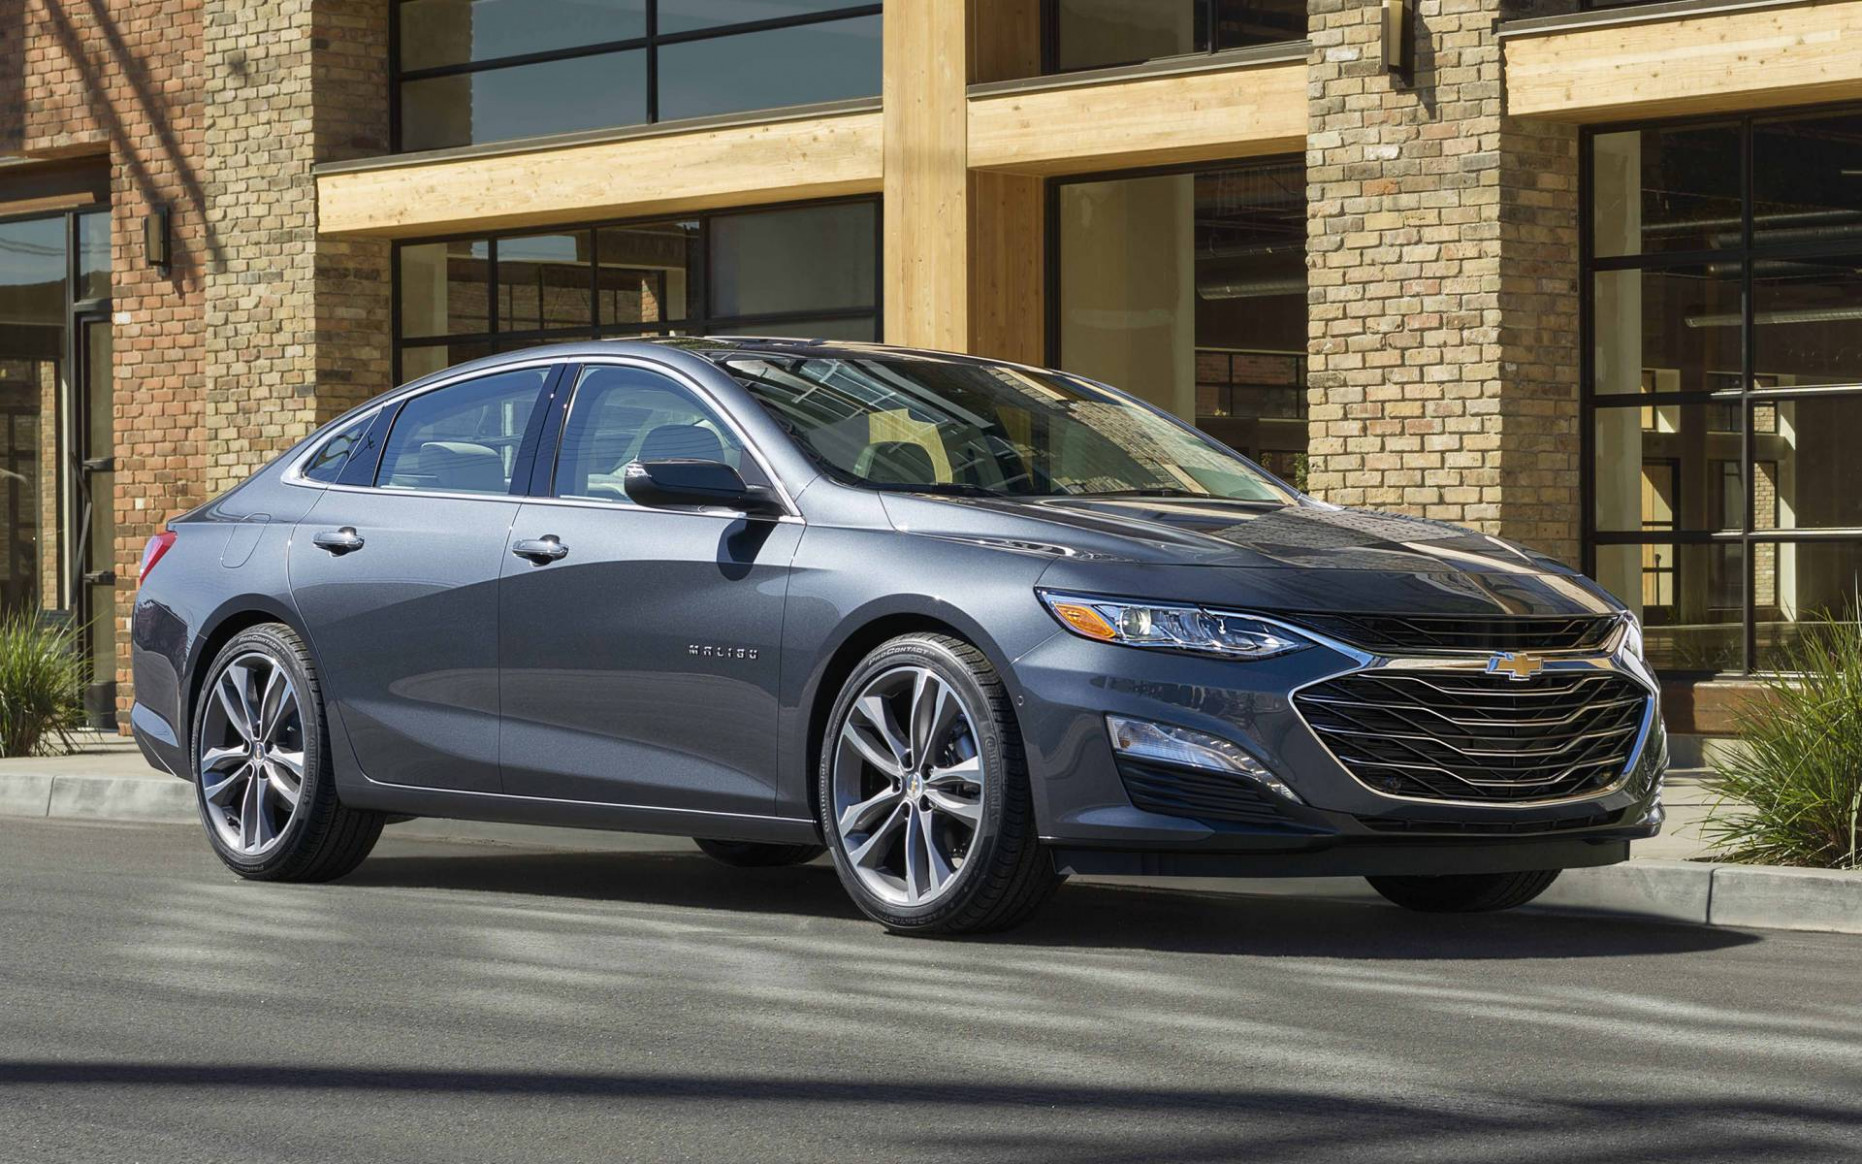 7 Chevrolet Malibu - News, reviews, picture galleries and ..